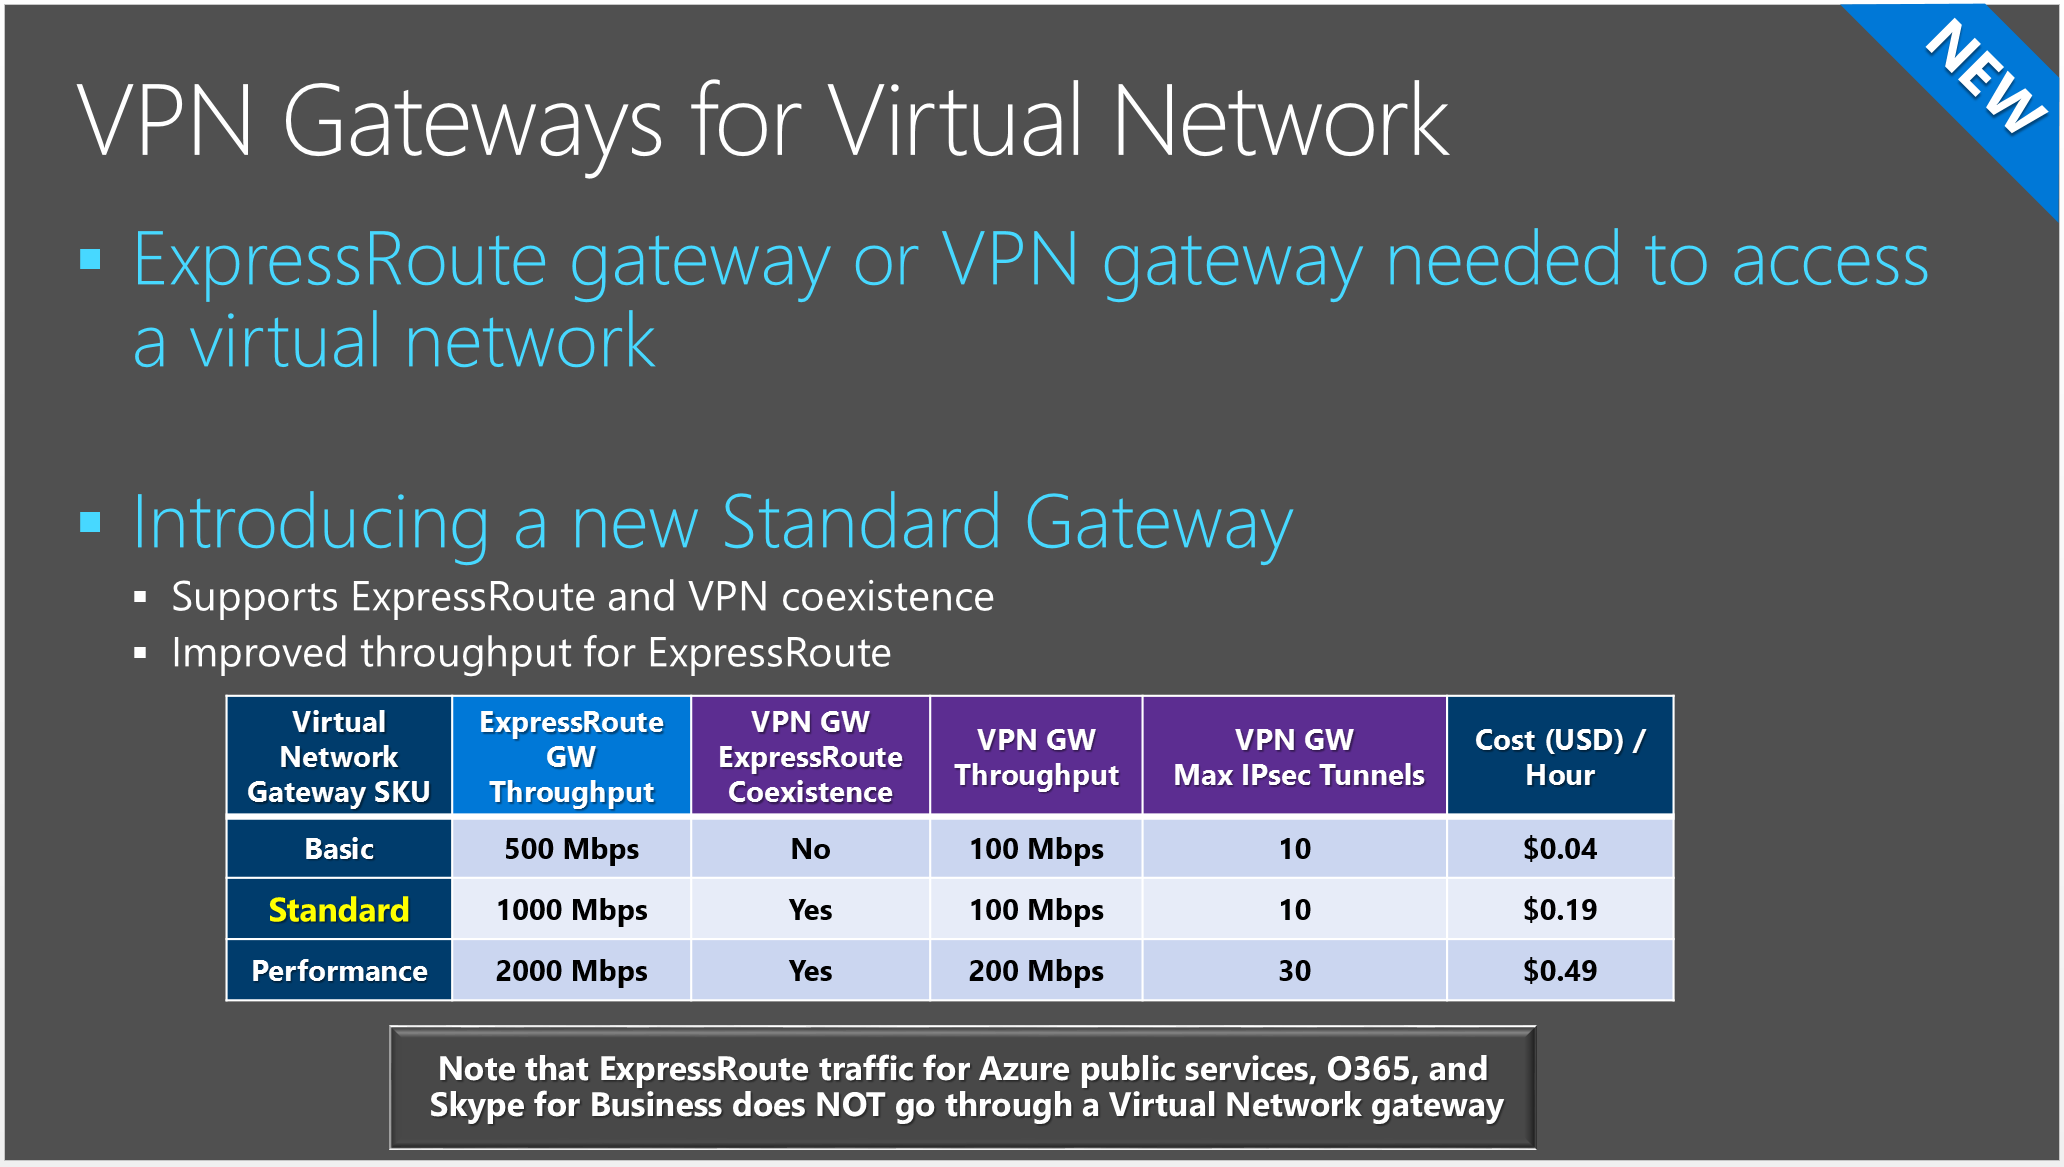 VPN Gateways